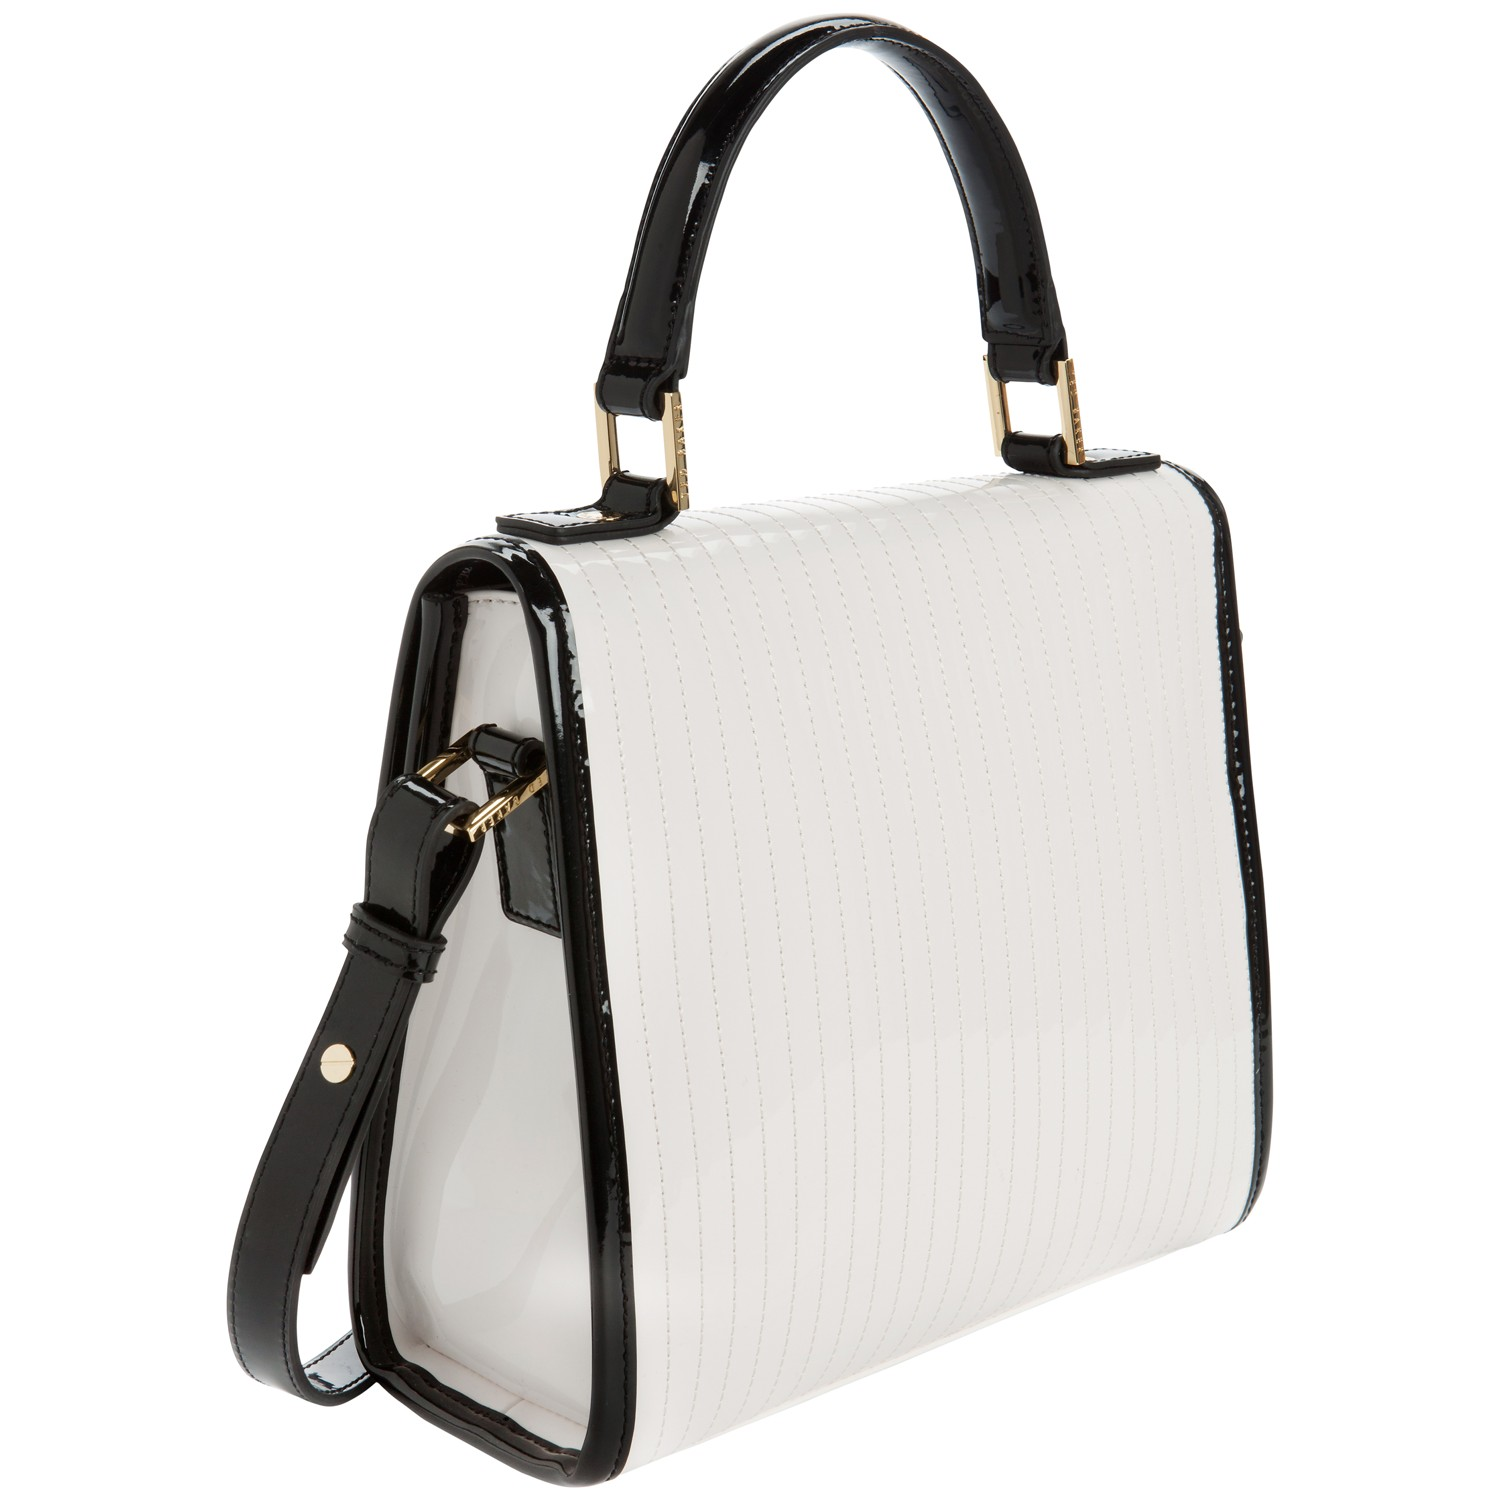 877e8480566f08 Women s White Small Quilted Tote Bag. See more Ted Baker Shoulder bags.